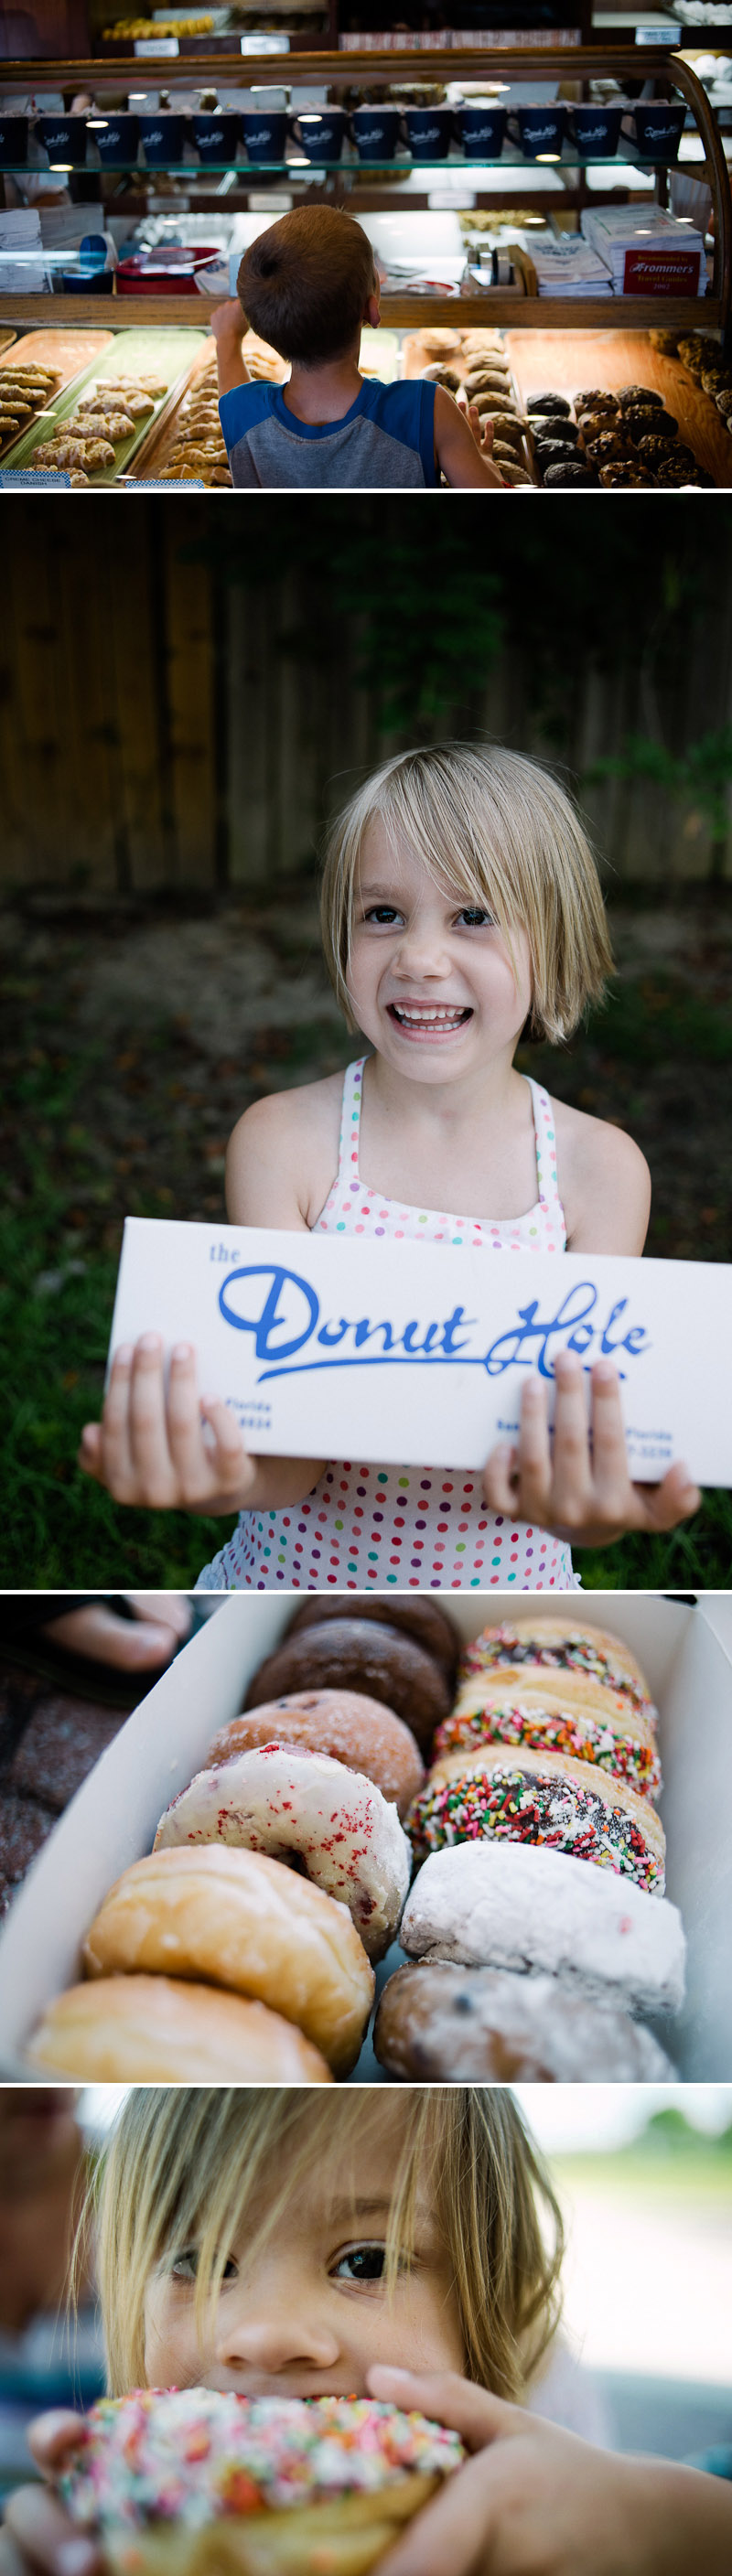 Family donut time with donuts from the Donut Hole in Destin Florida.